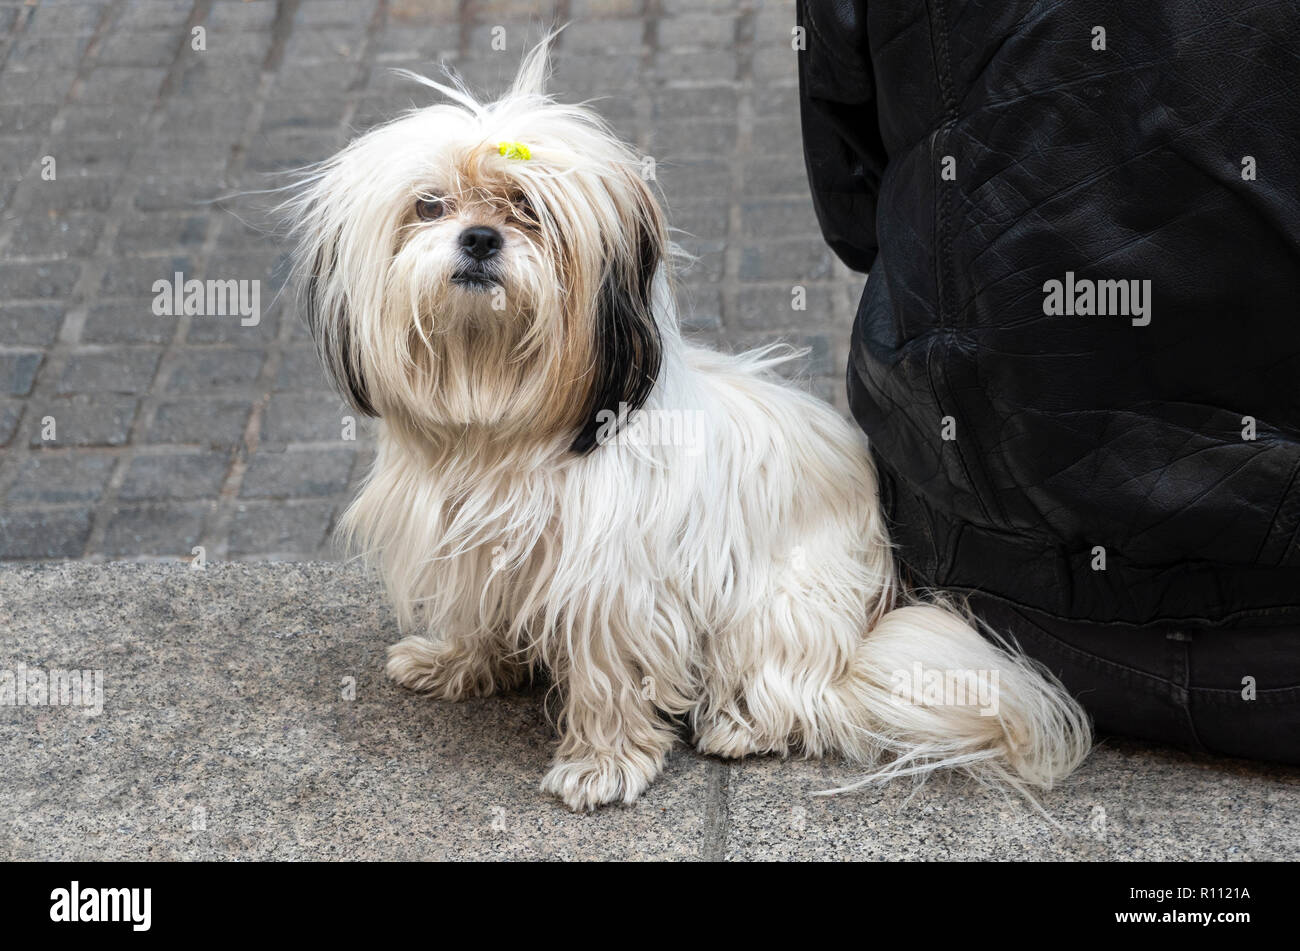 Shih Tzu A Toy Breed Dog From China Stock Photo 224372998 Alamy